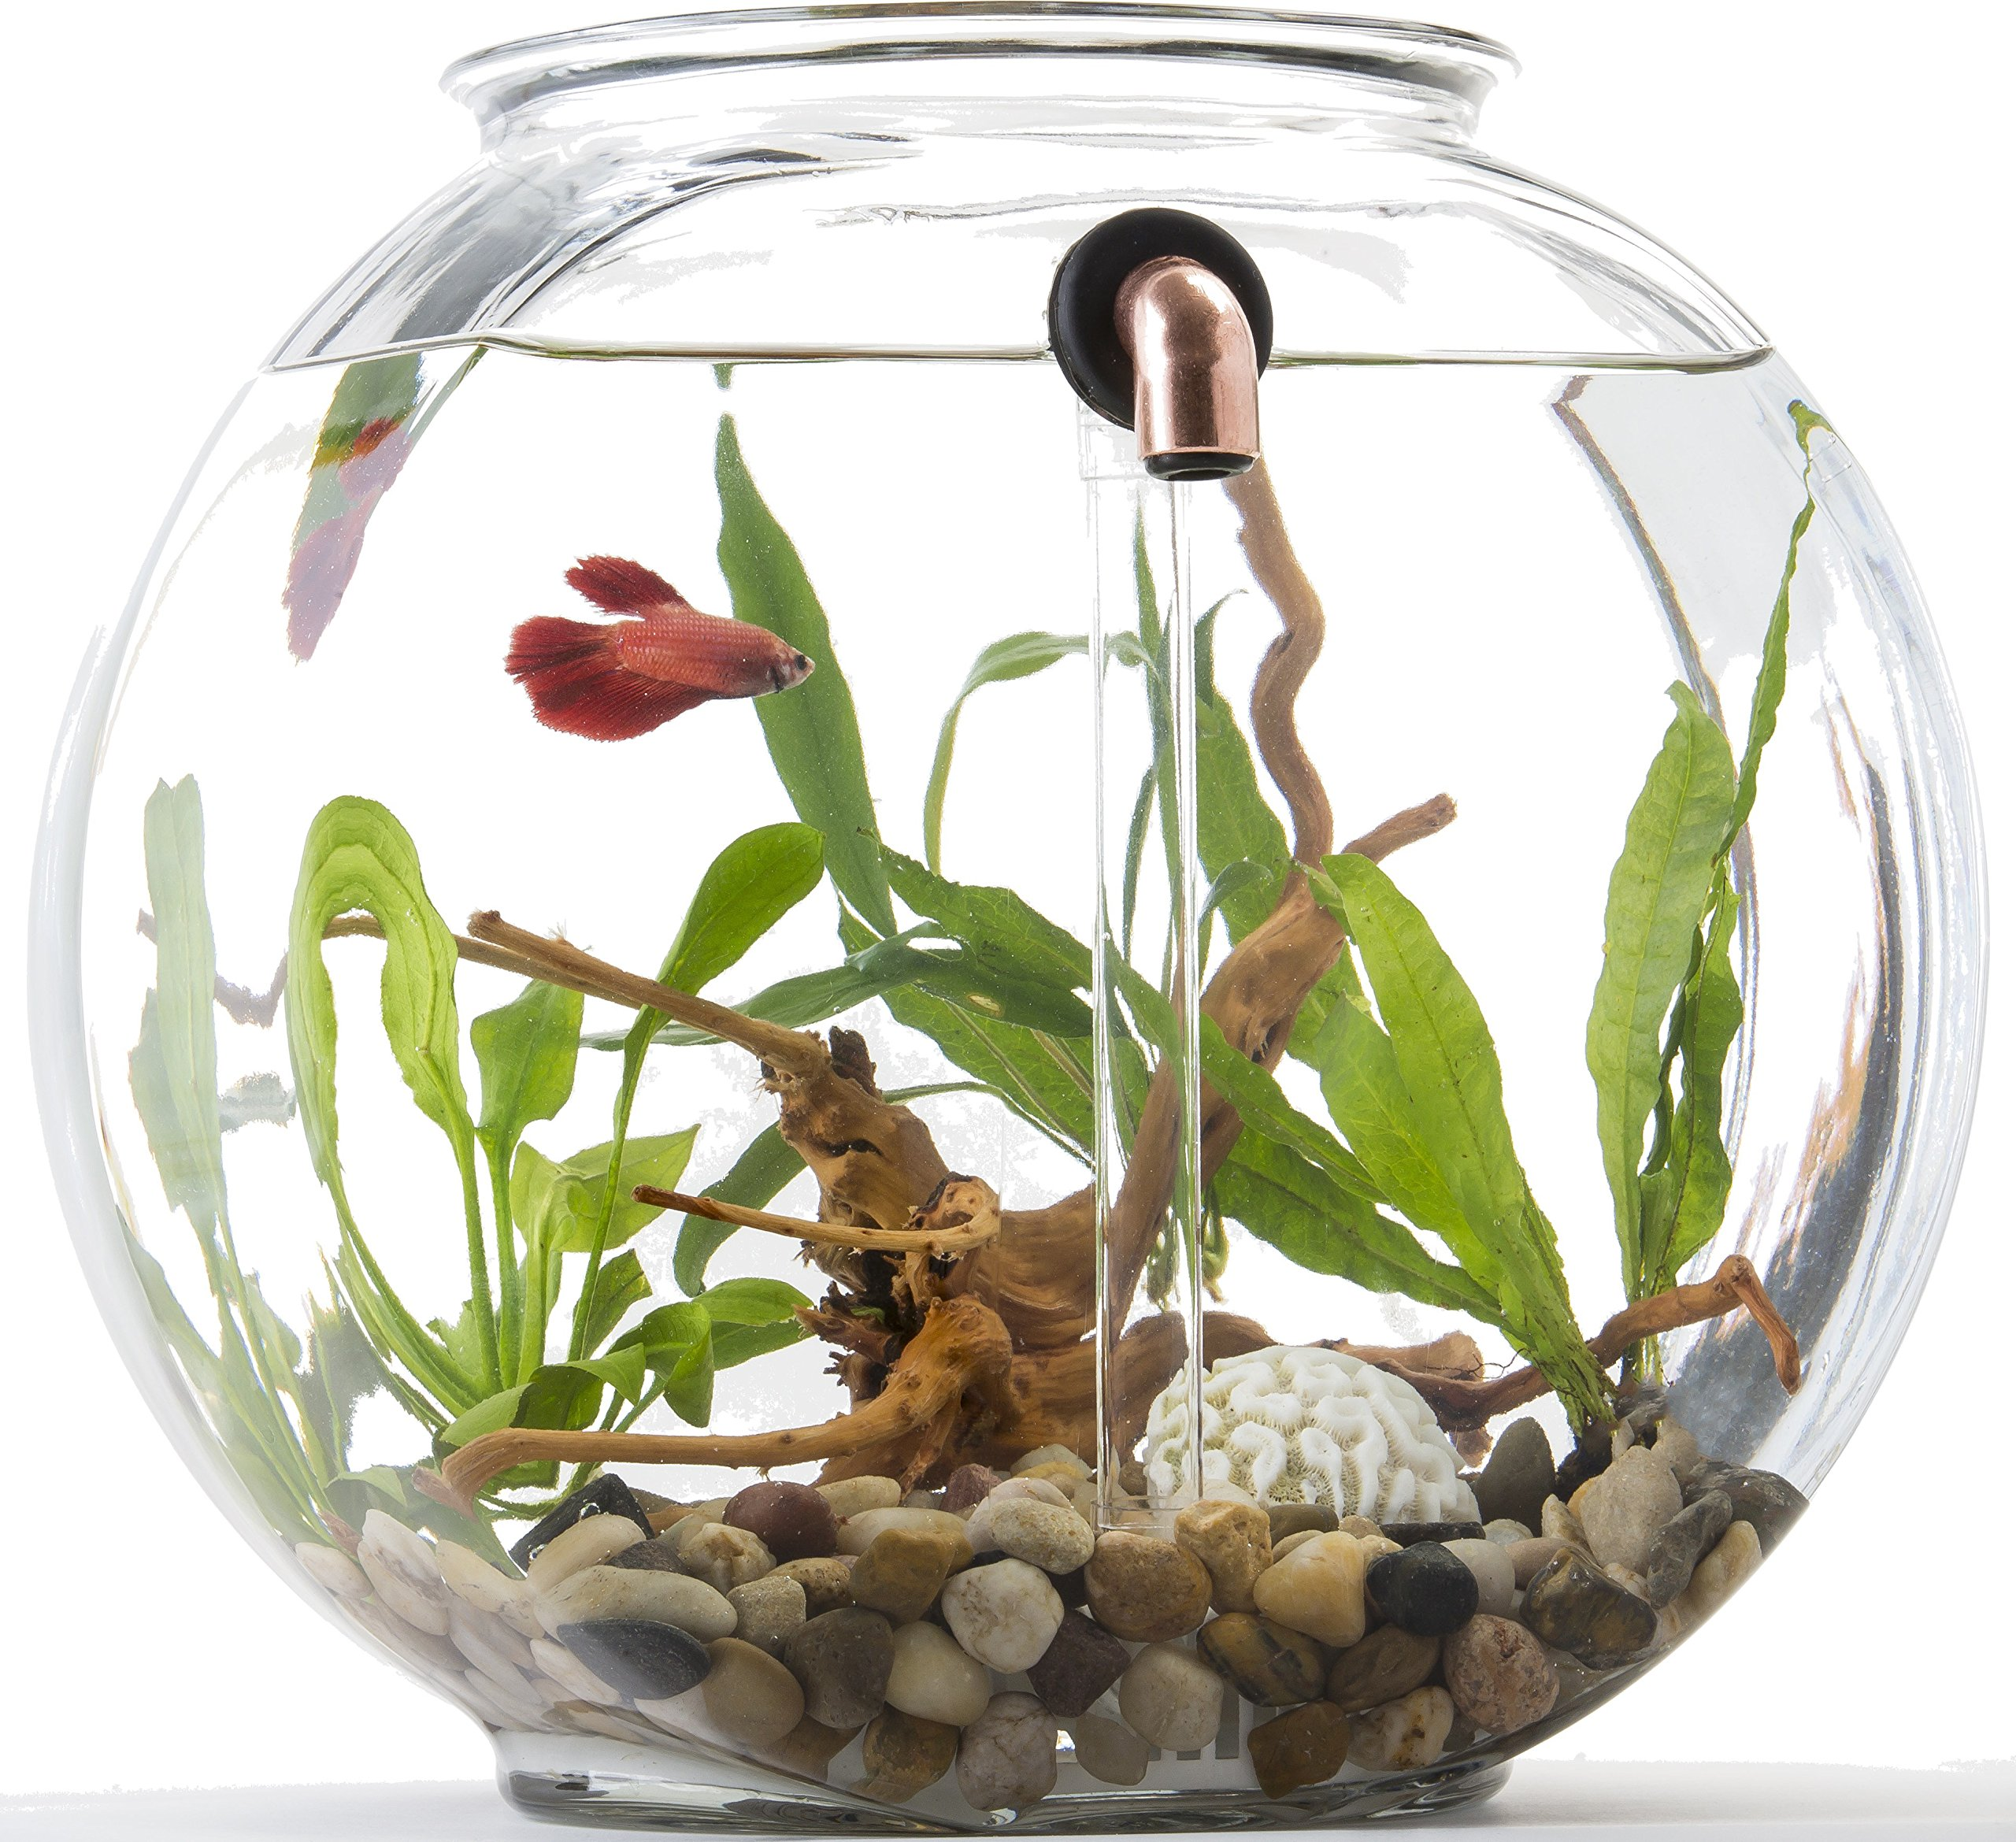 NoClean Aquariums: Eco-Friendly, Self-Cleaning, Glass Fishbowl - GravityFlow2